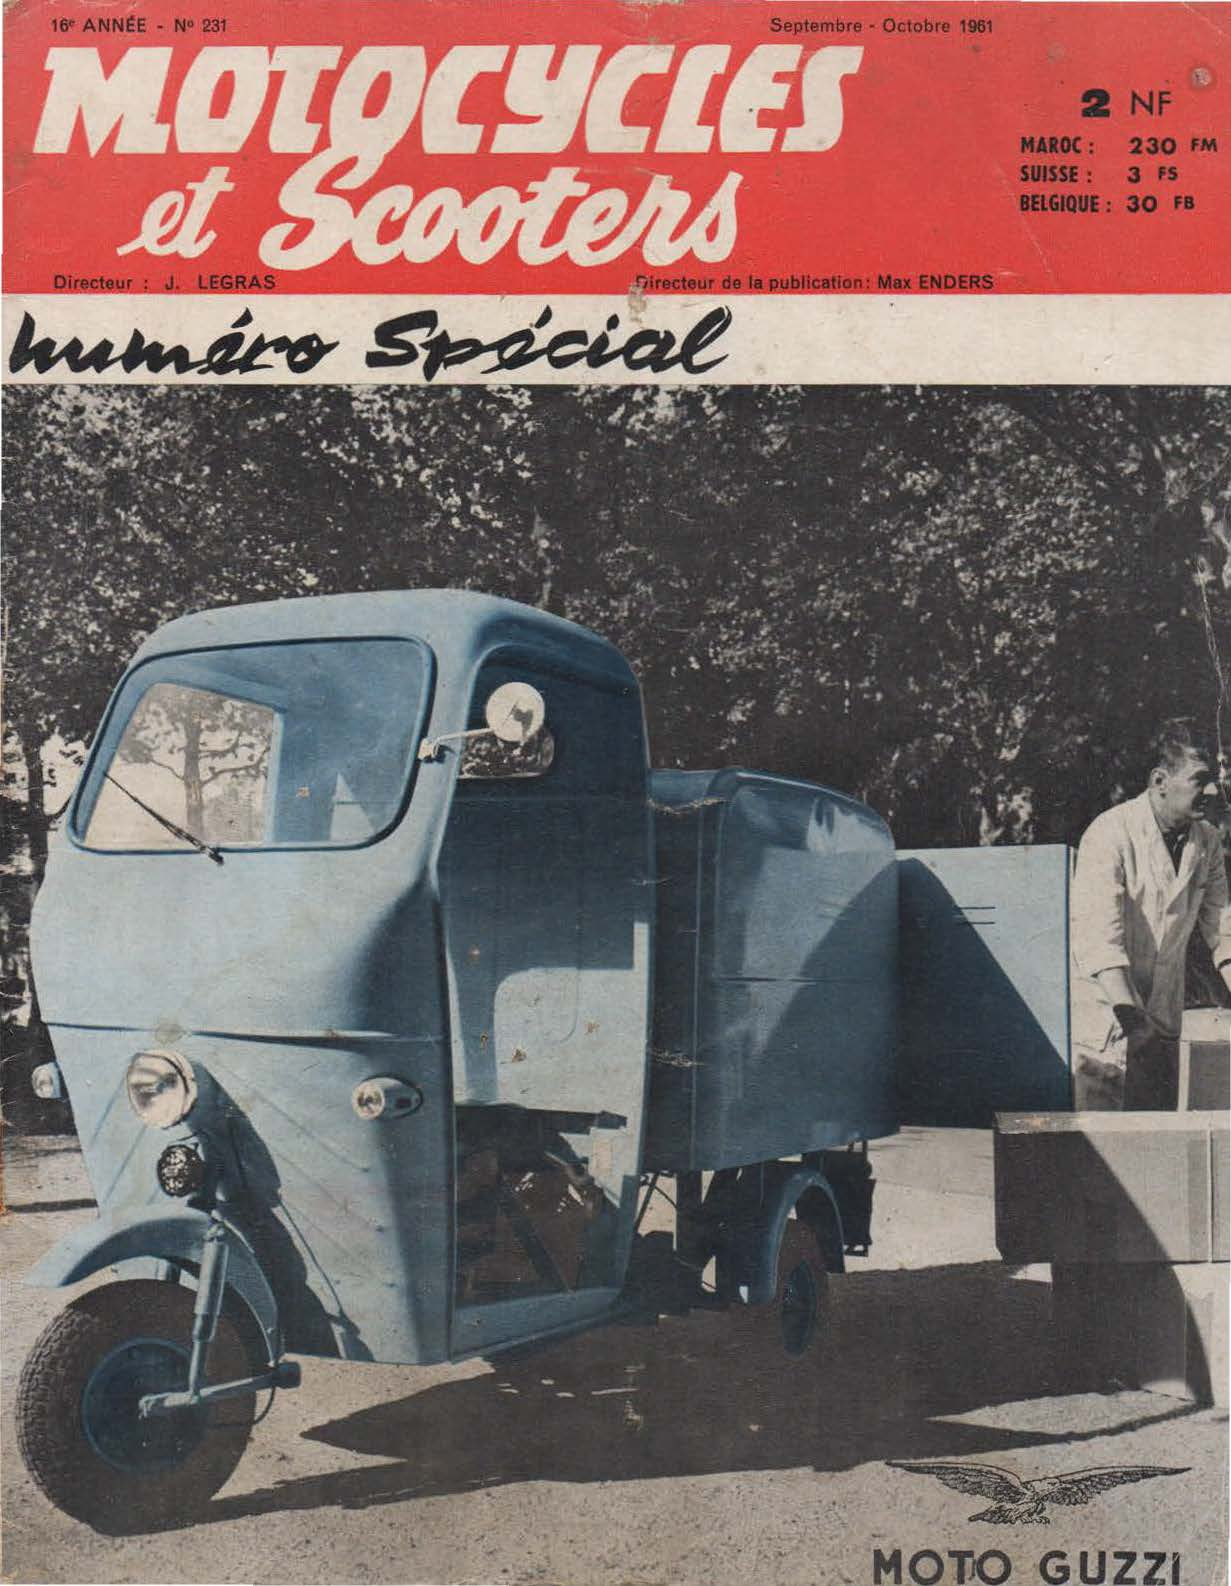 Motocycles et Scooters - Septembre-Octobre 1961 - No. 231